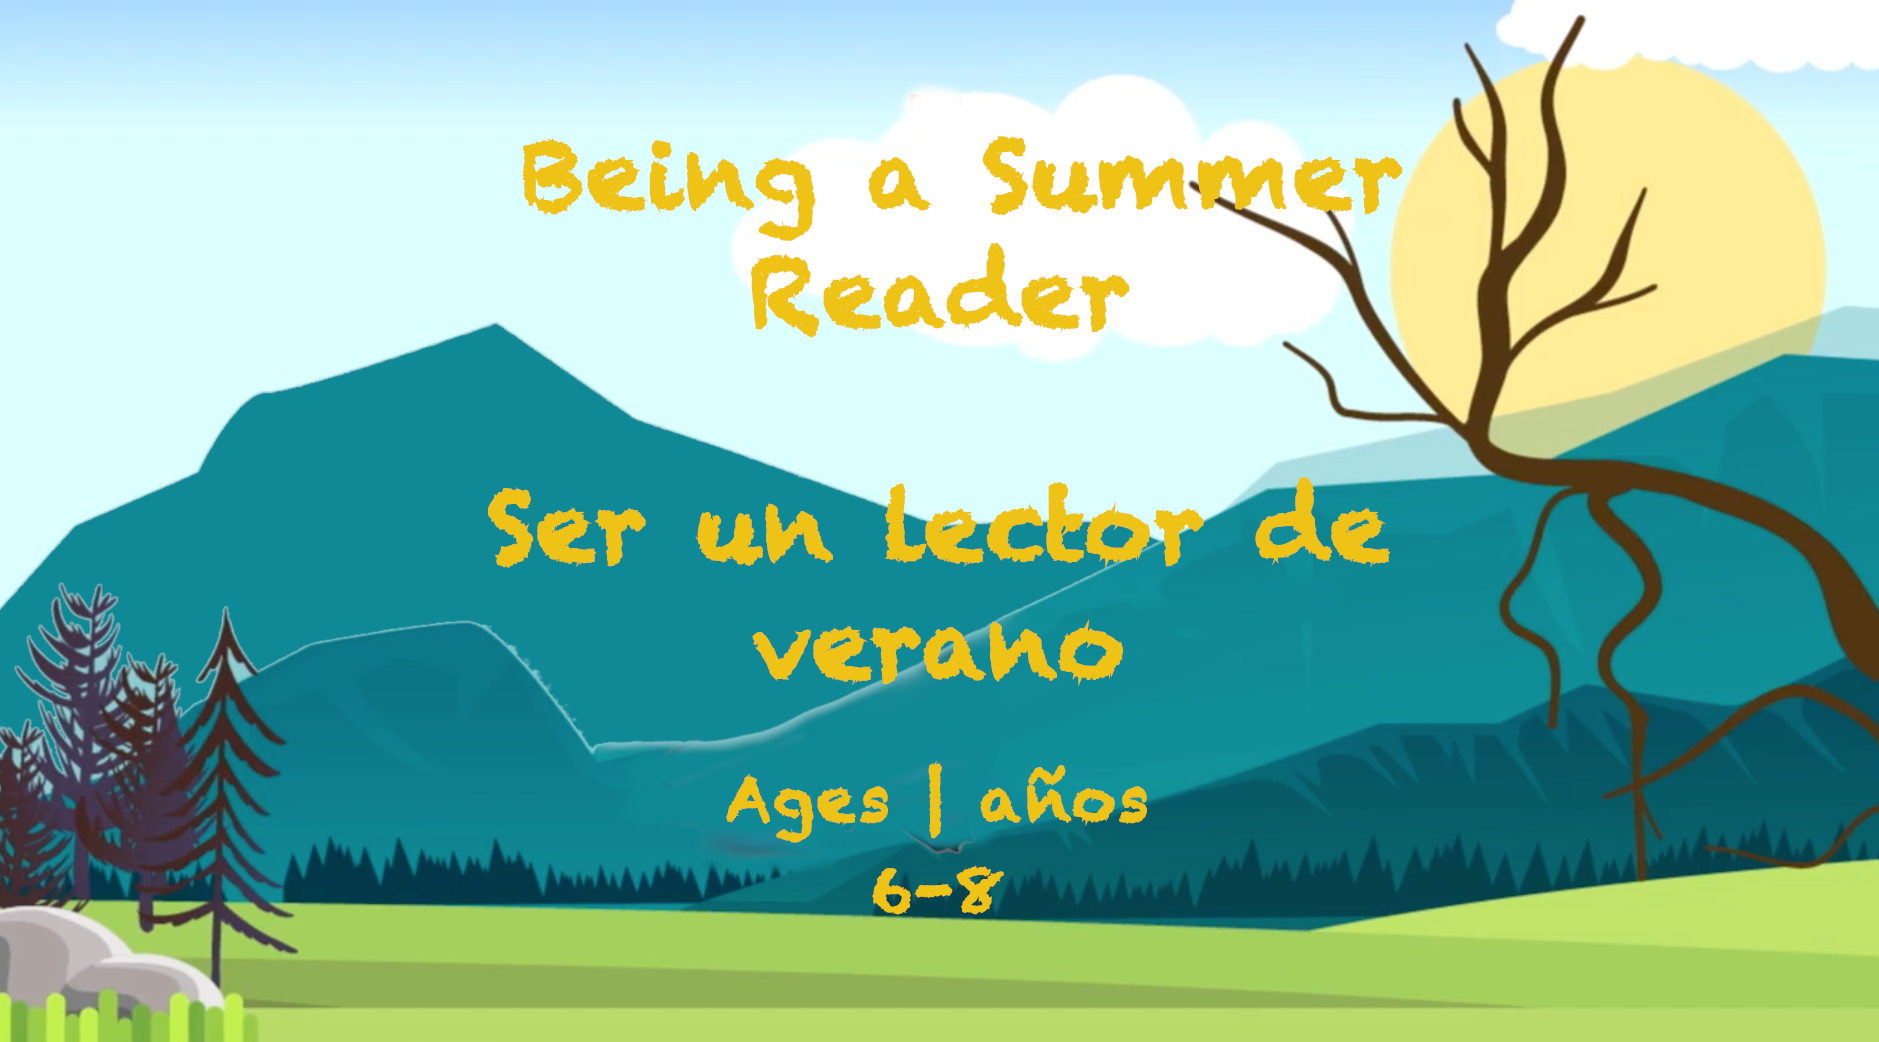 Weekly Themes #44 Being a Summer Reader   Ser un Lector de Verano for 6-8 year olds